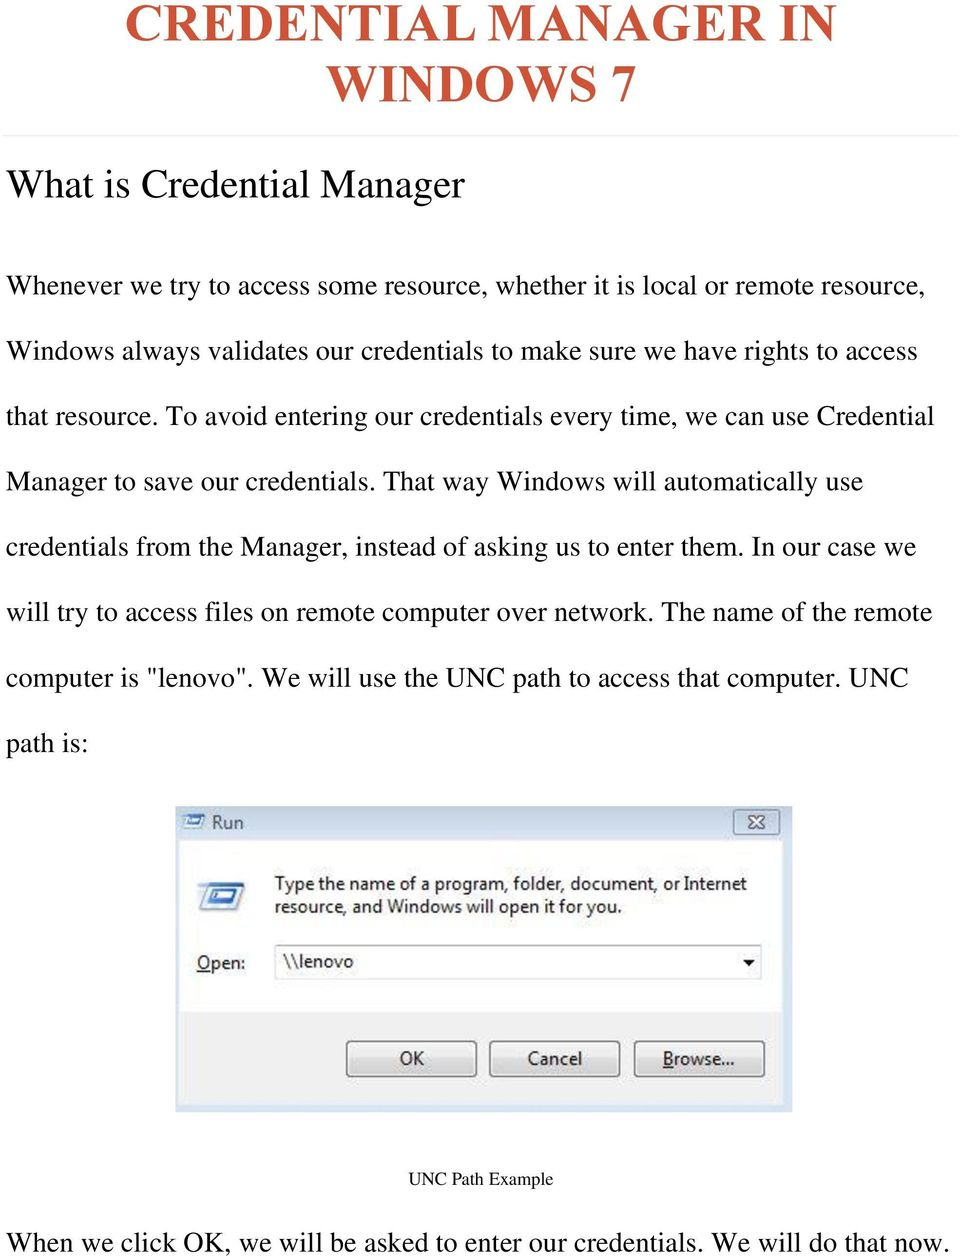 That way Windows will automatically use credentials from the Manager, instead of asking us to enter them. In our case we will try to access files on remote computer over network.